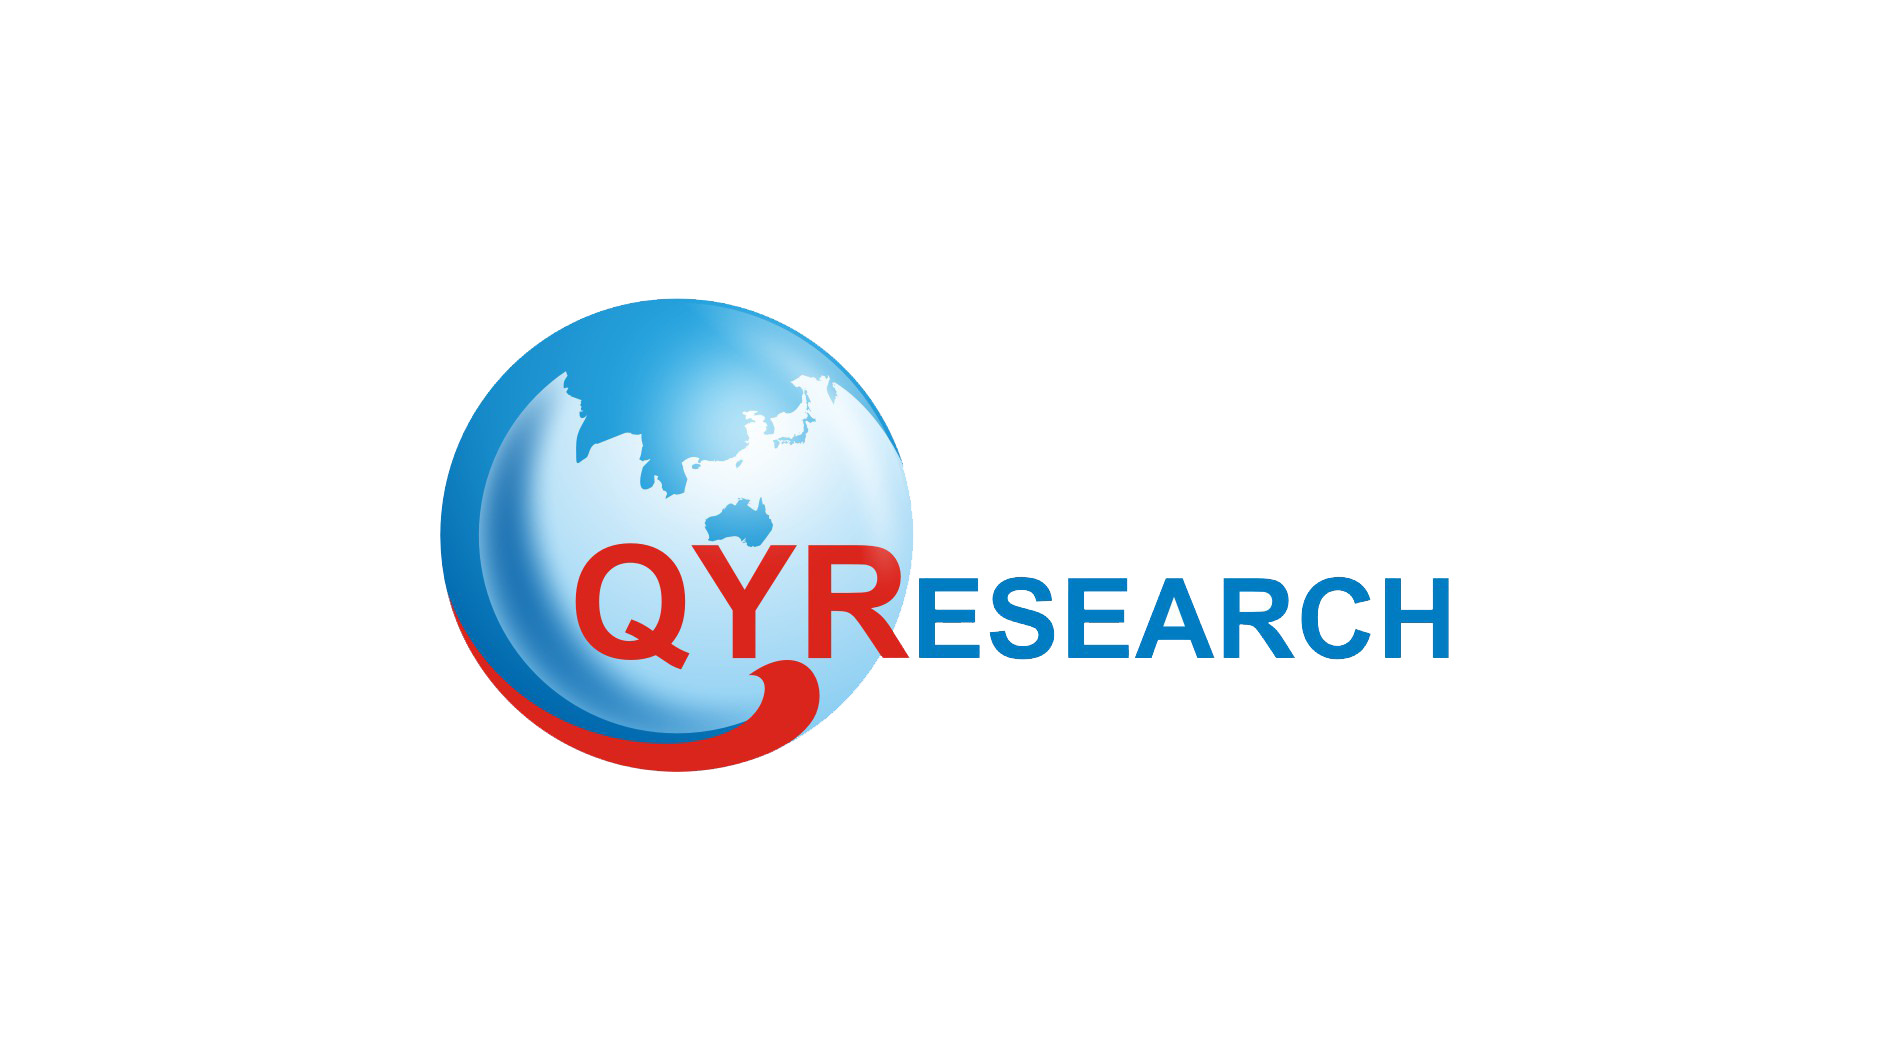 DIP Switches Market Future Growth Prospect, Industry Report and Growing Demand Analysis till 2025